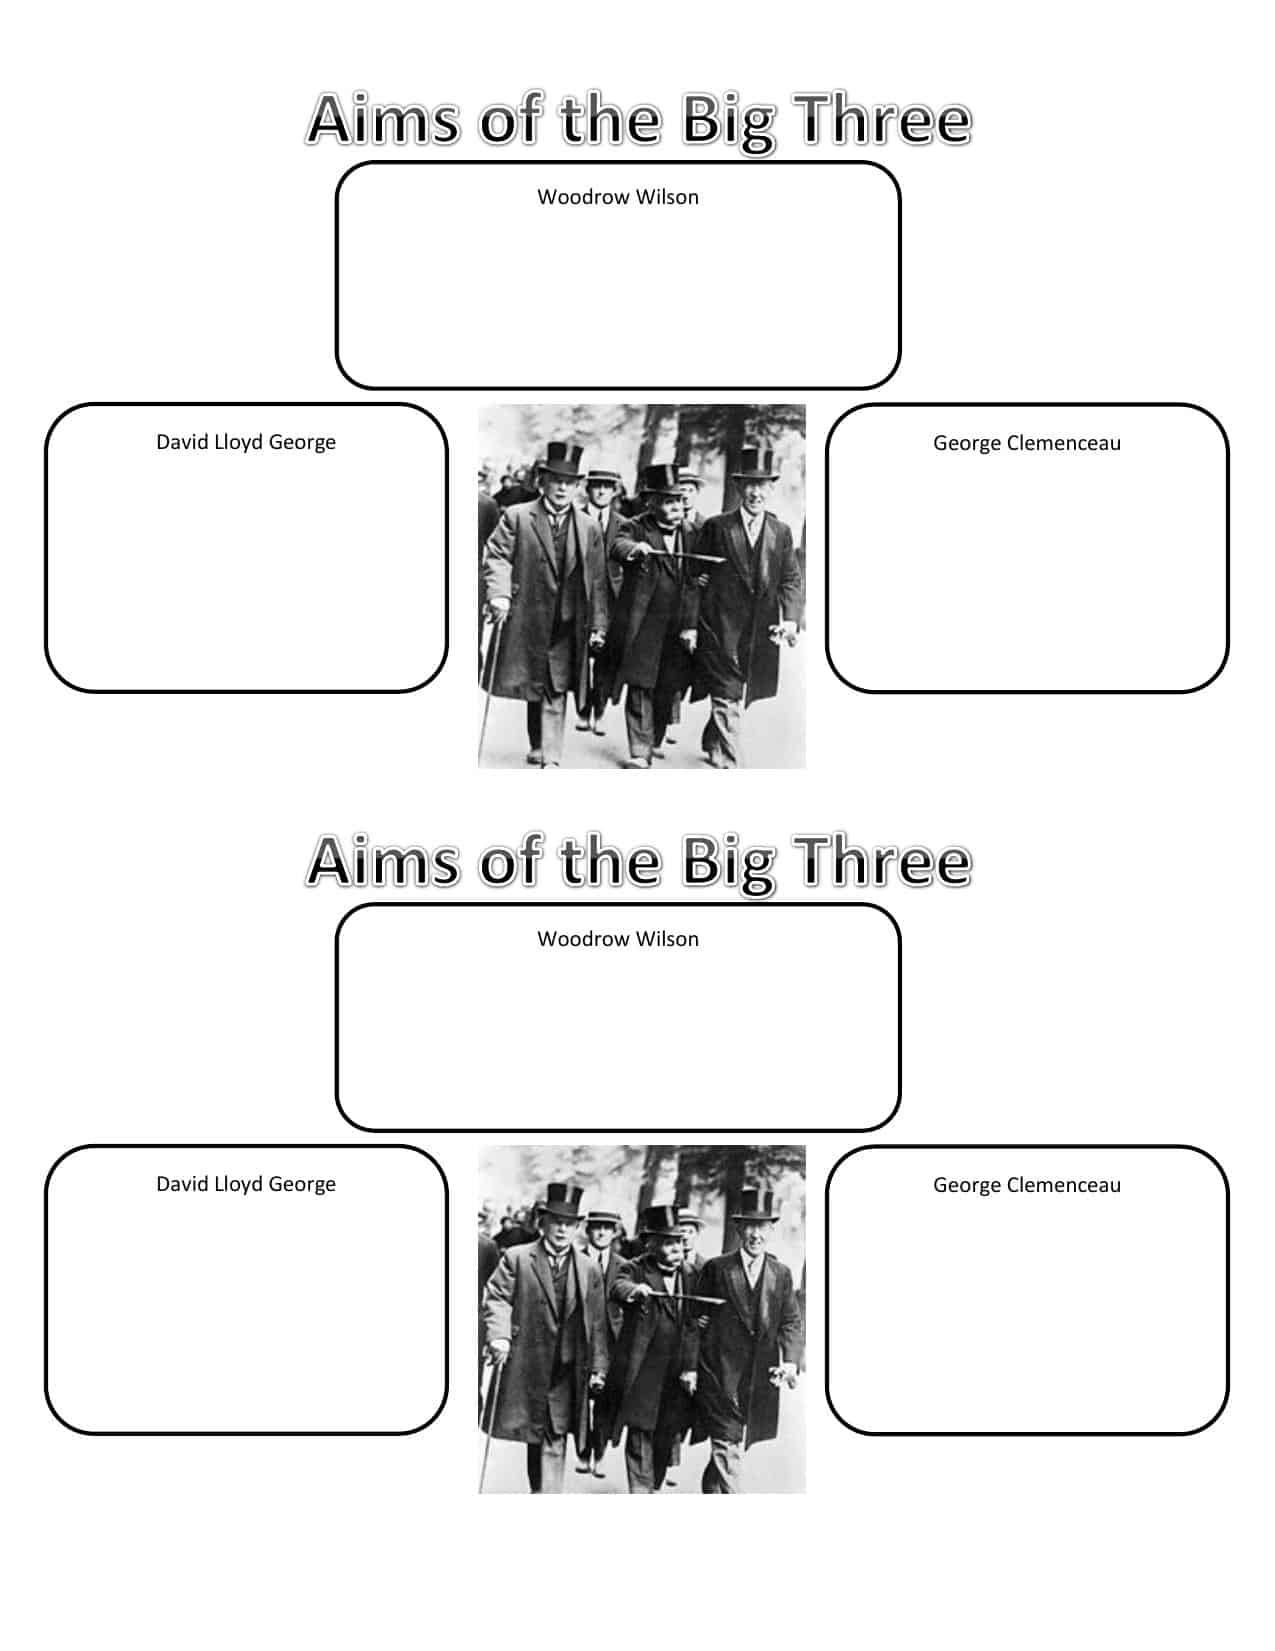 Aims Of The Big Three At Versailles Worksheet